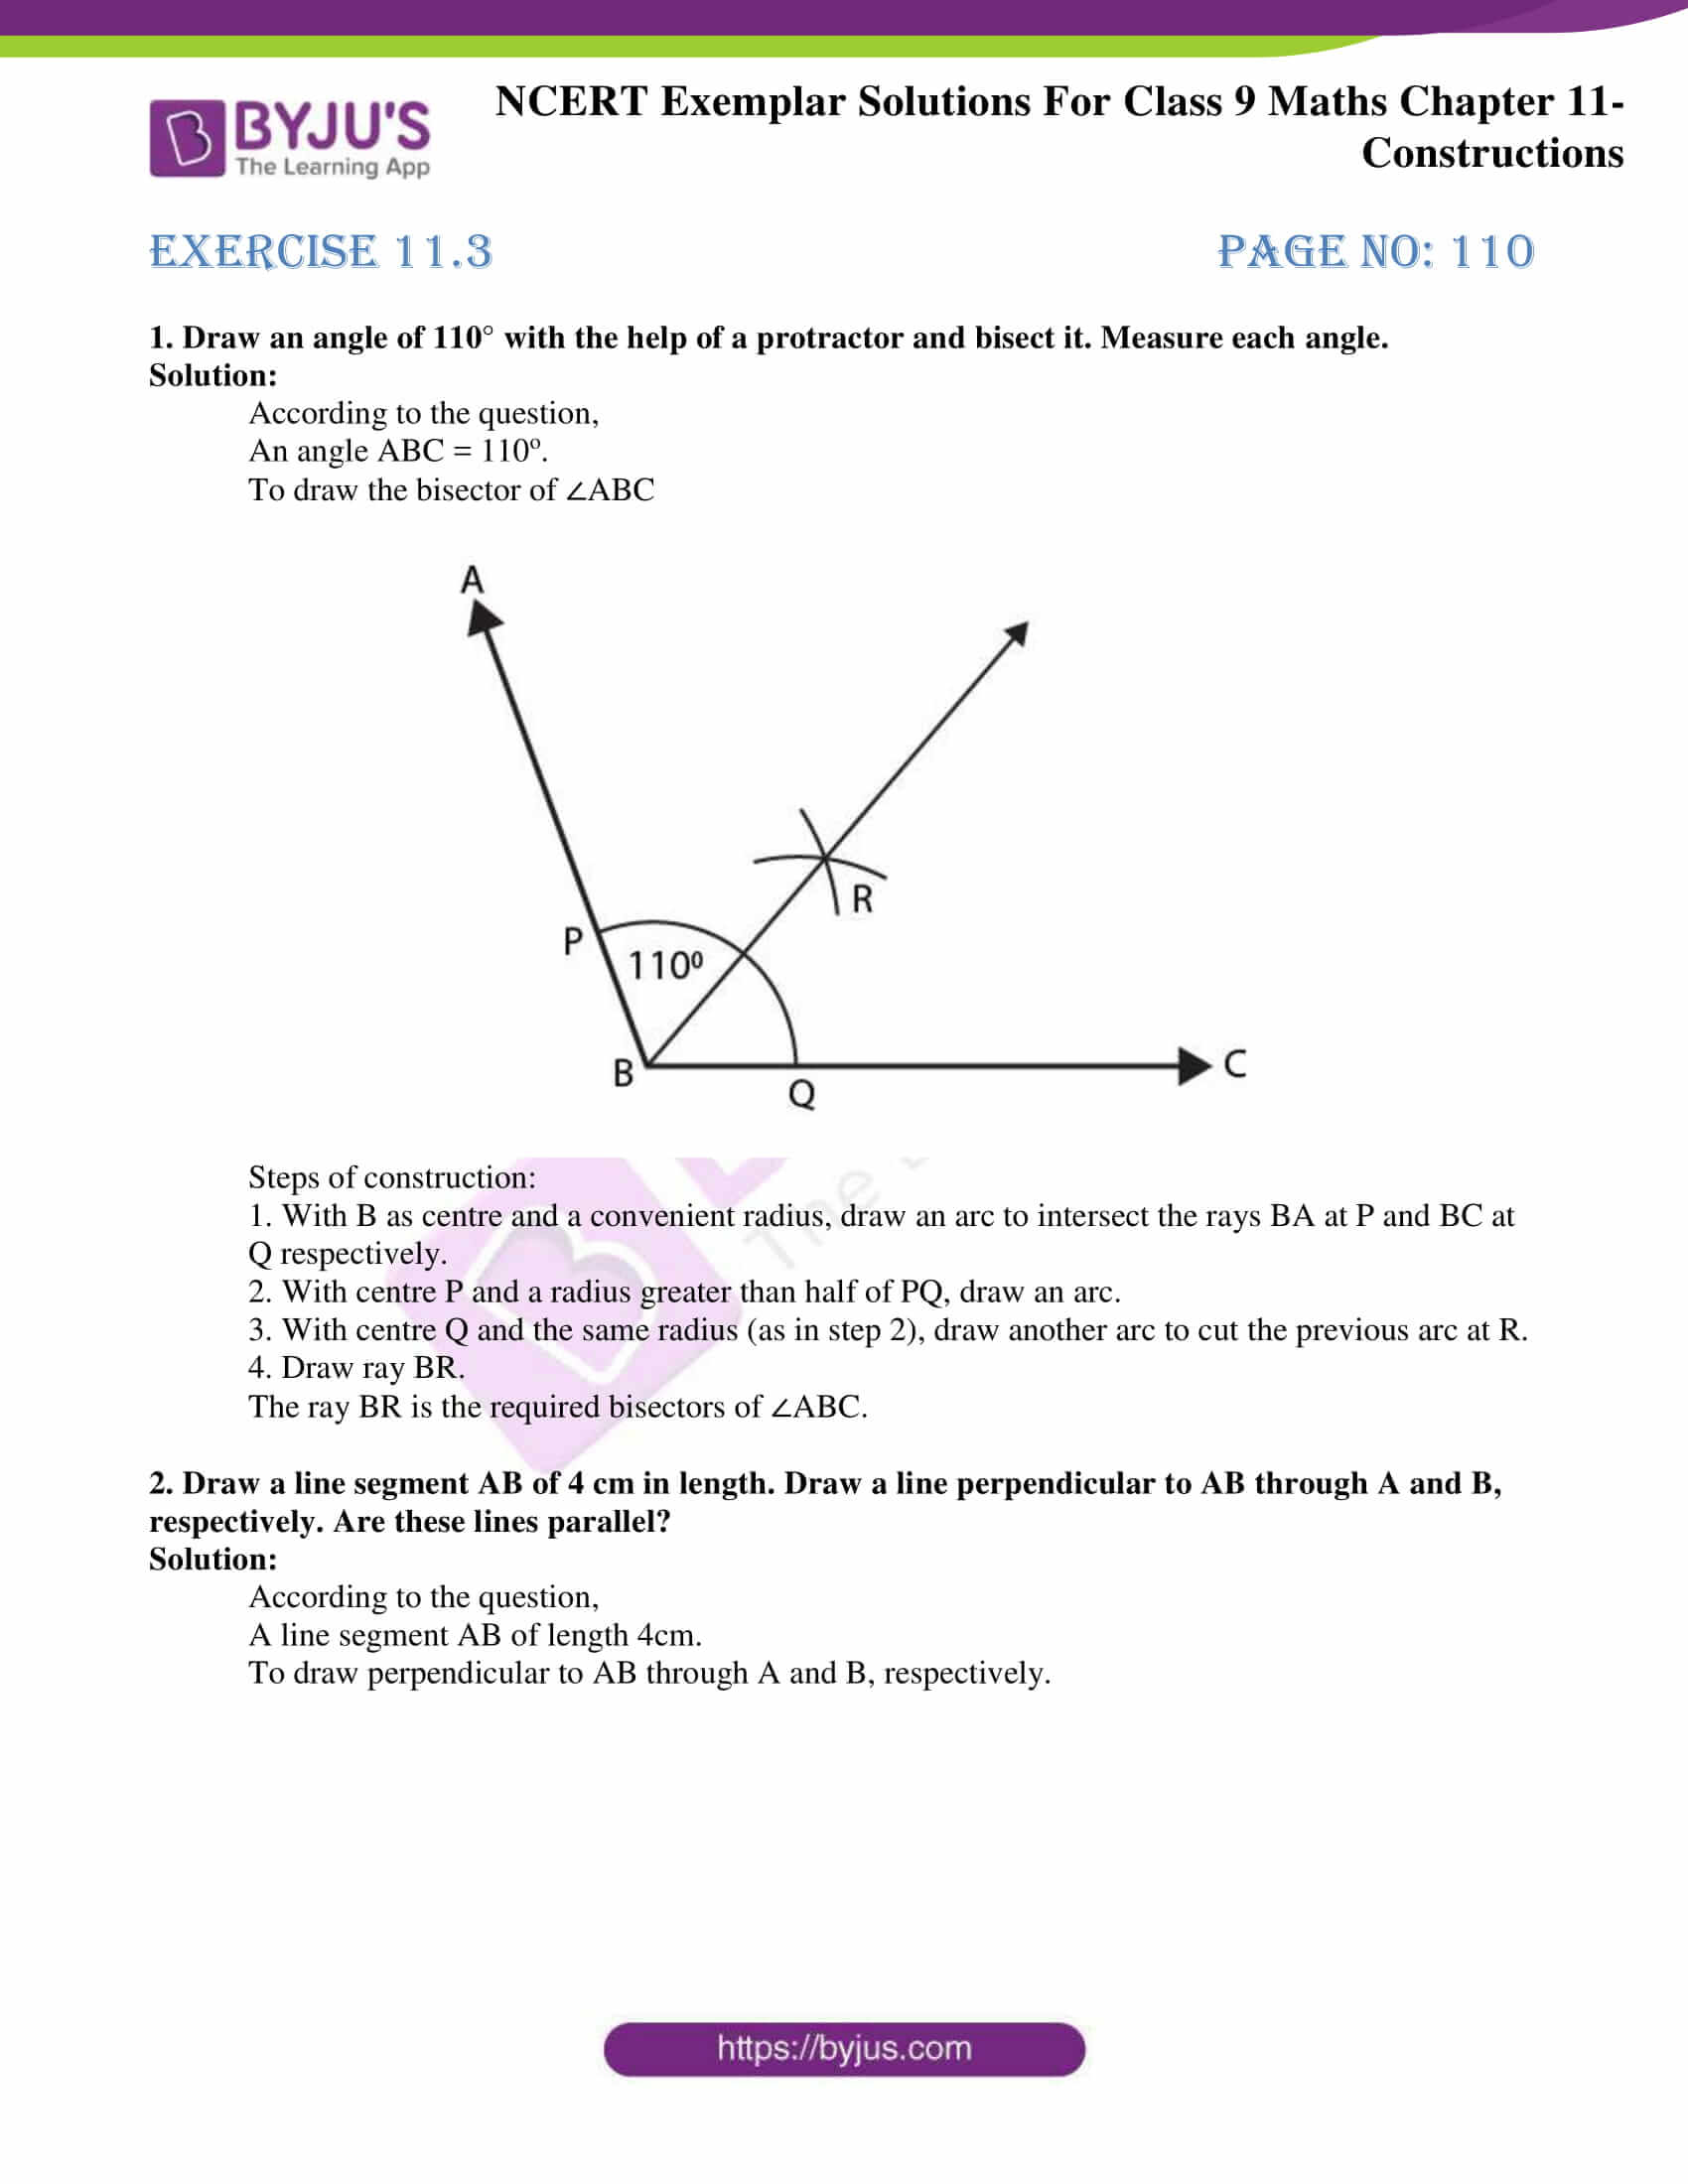 ncert exemplar solution class 9 maths chapter 11